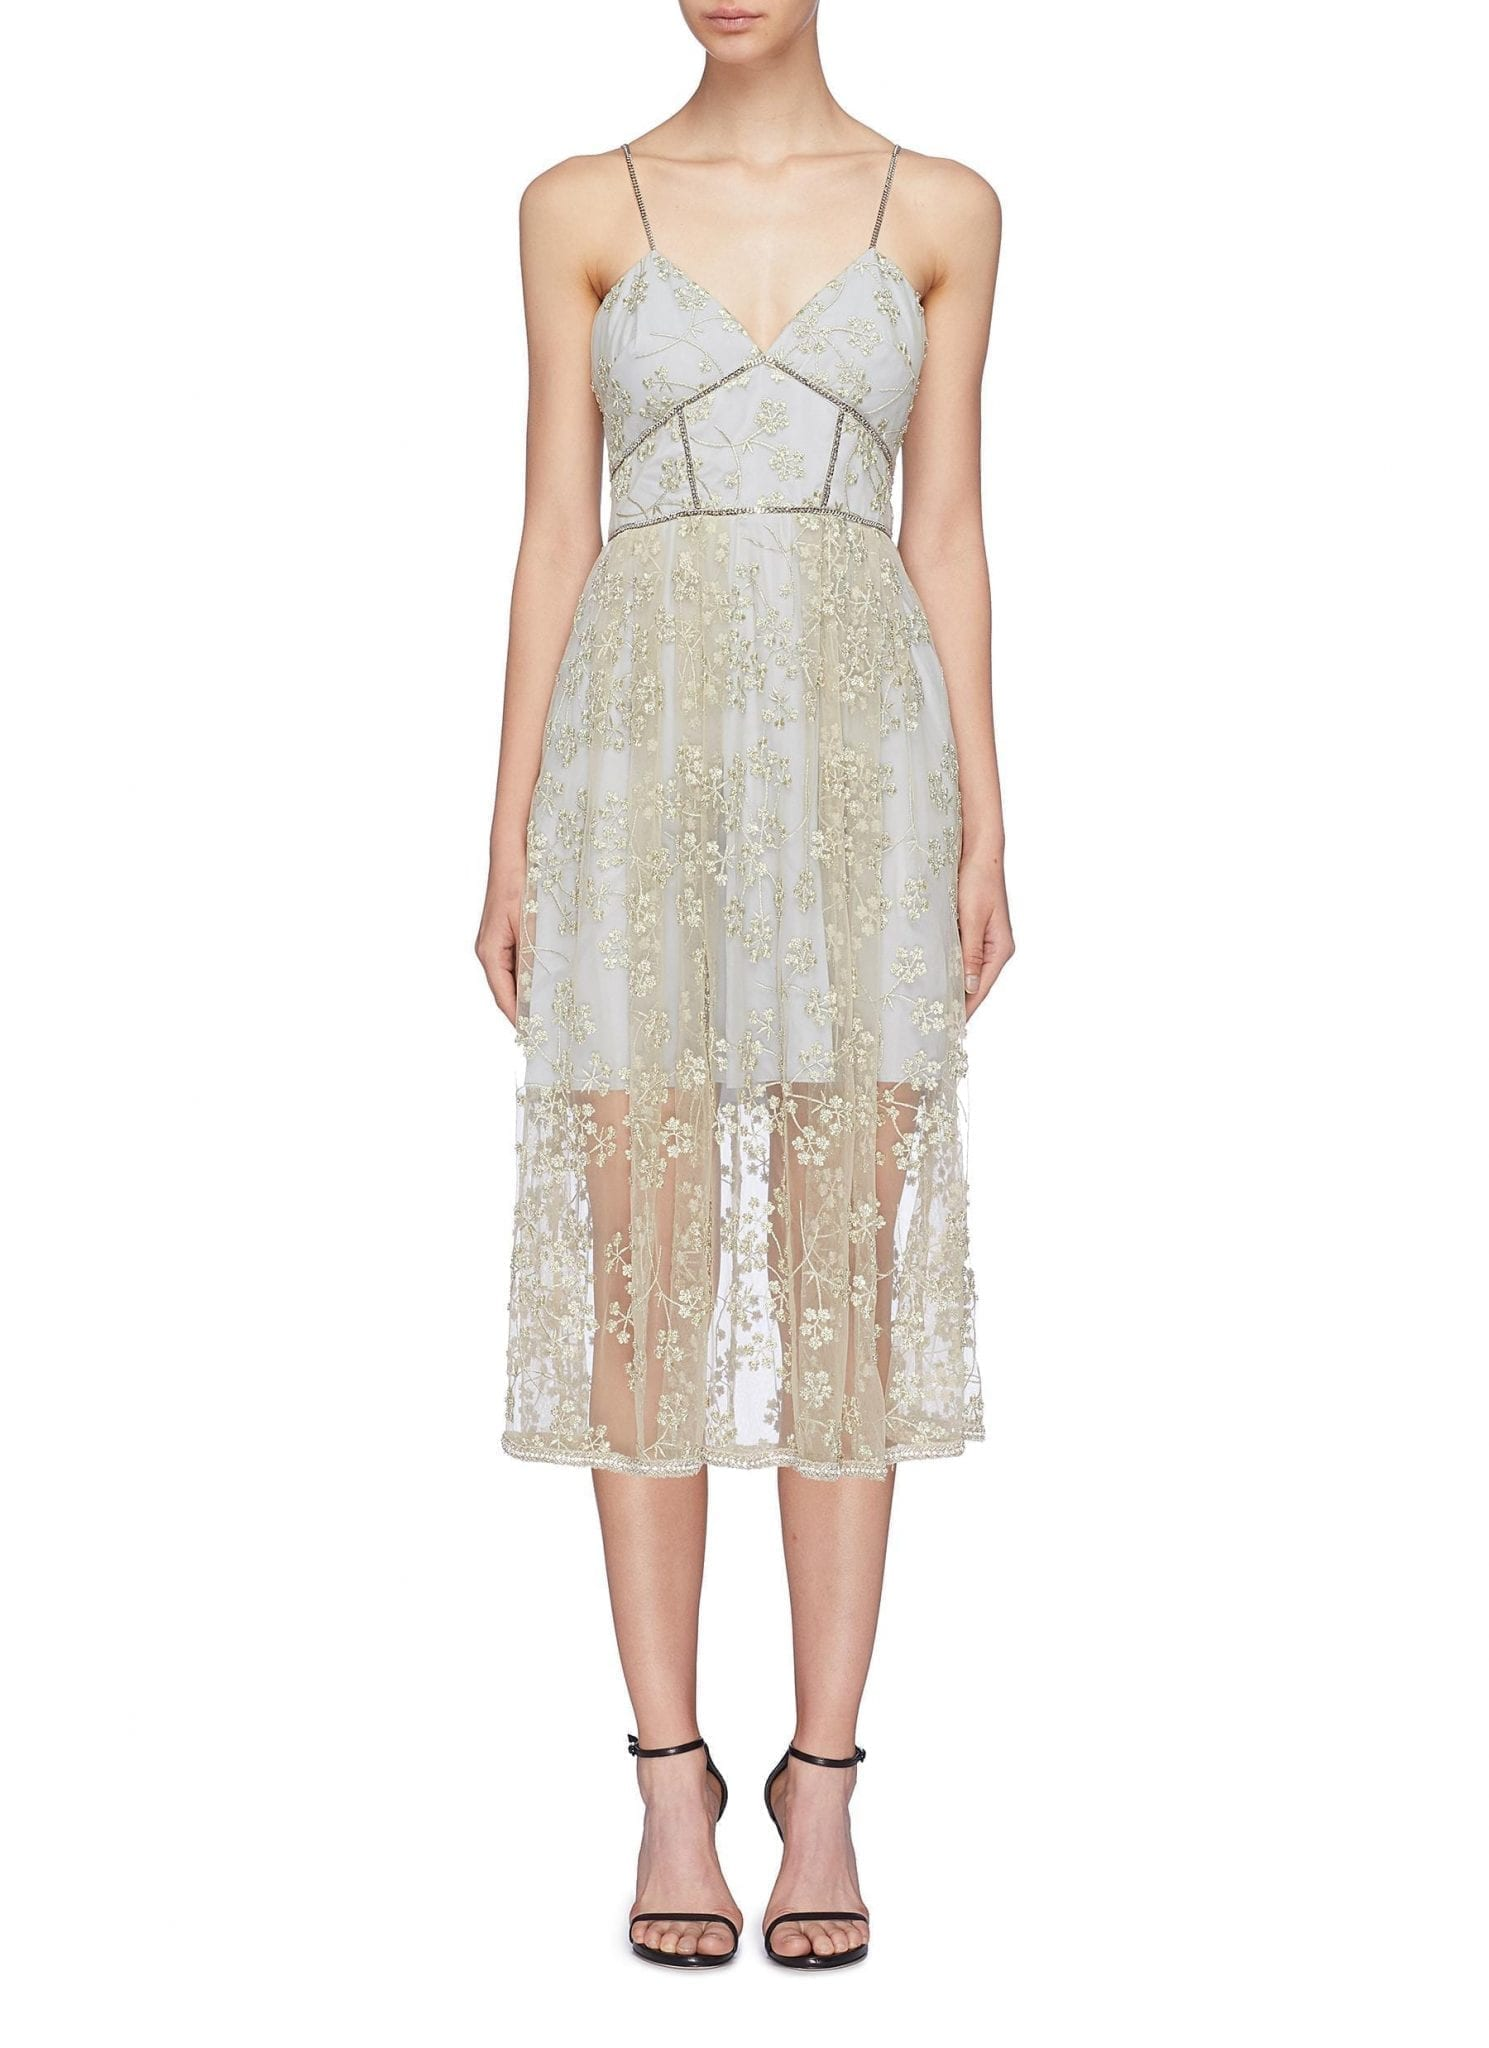 SELF-PORTRAIT Chain Trim Floral Embroidered Layered Mesh Blue / Grey Dress